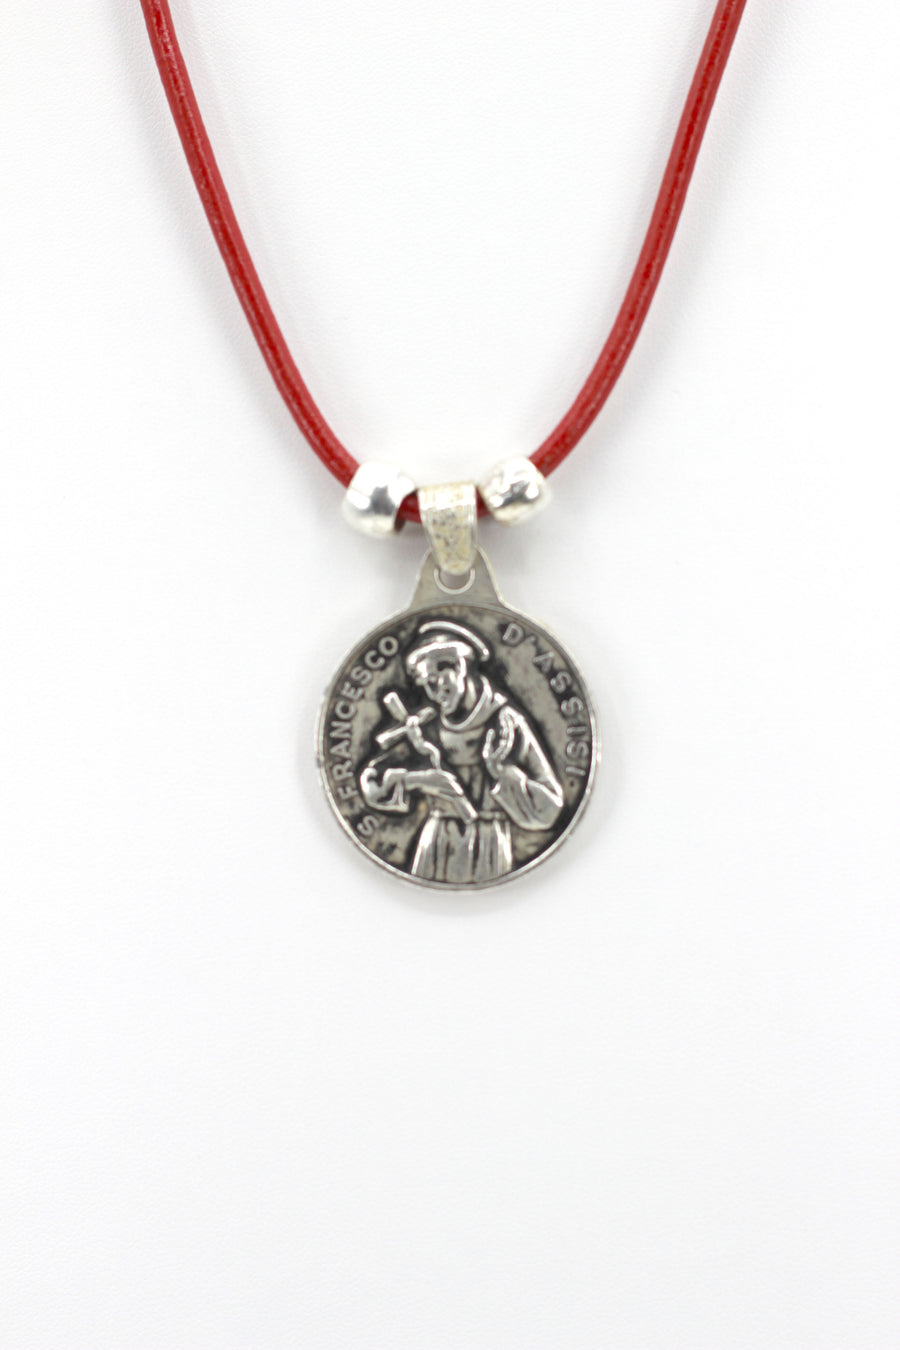 Vintage Necklace of Saint Francis of Assisi Handmade Jewelry with Genuine Leather strap by Graciela's Collection